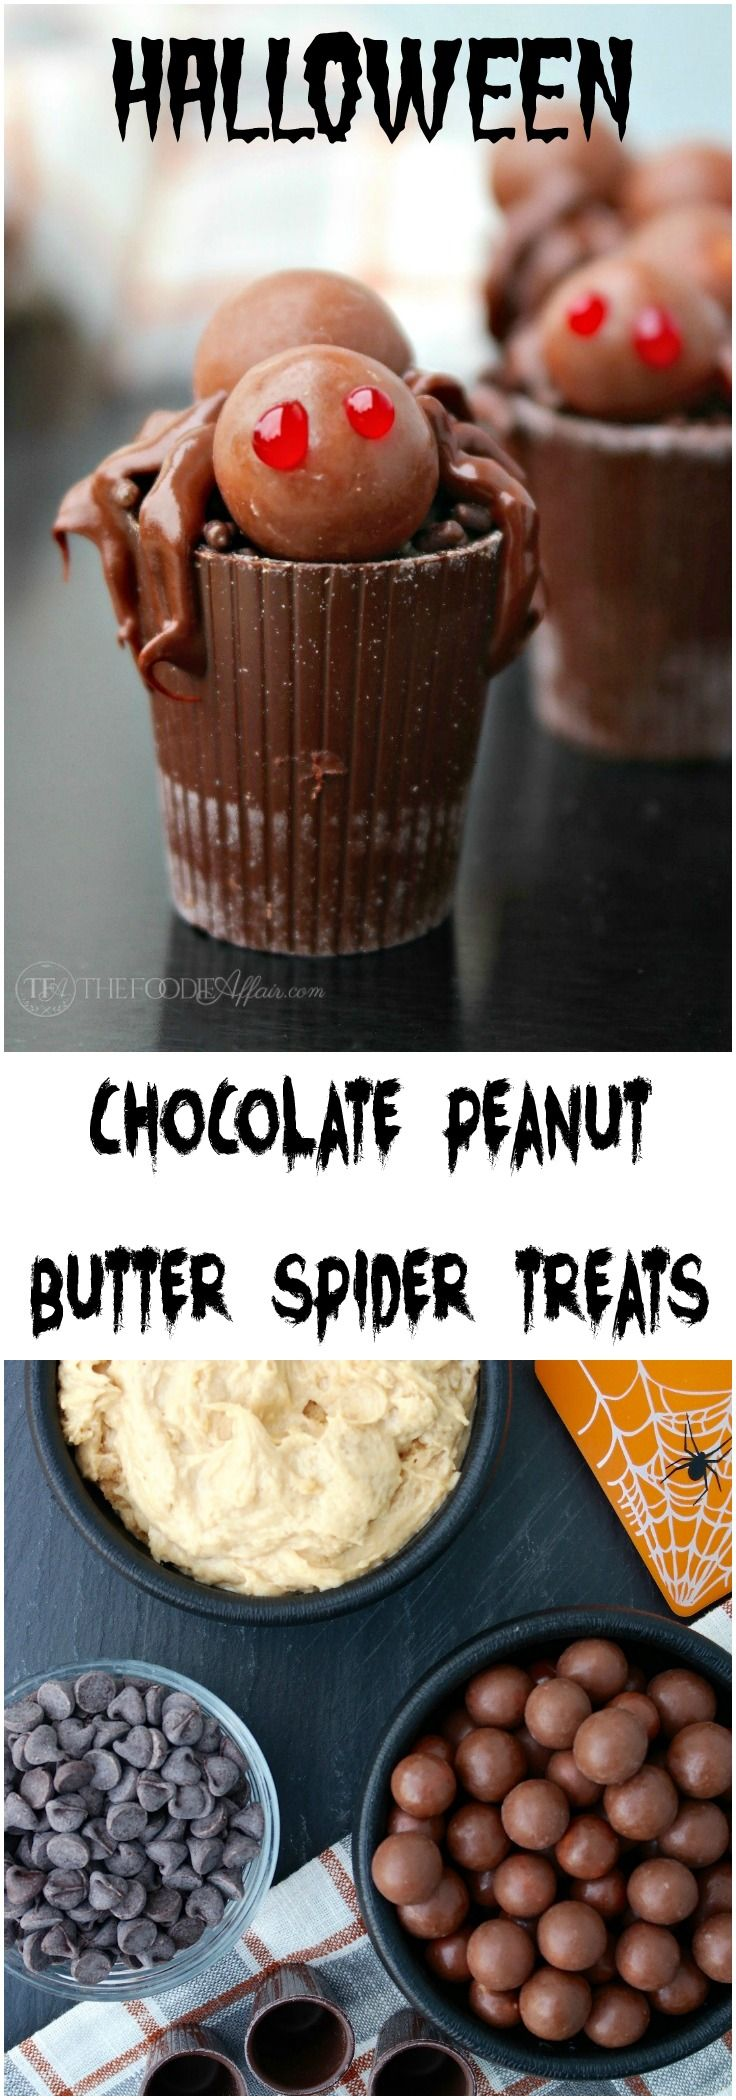 Halloween Chocolate Peanut Butter Spider Treat will be a perfect addition to a party celebrating the fun holiday! The Foodie Affair